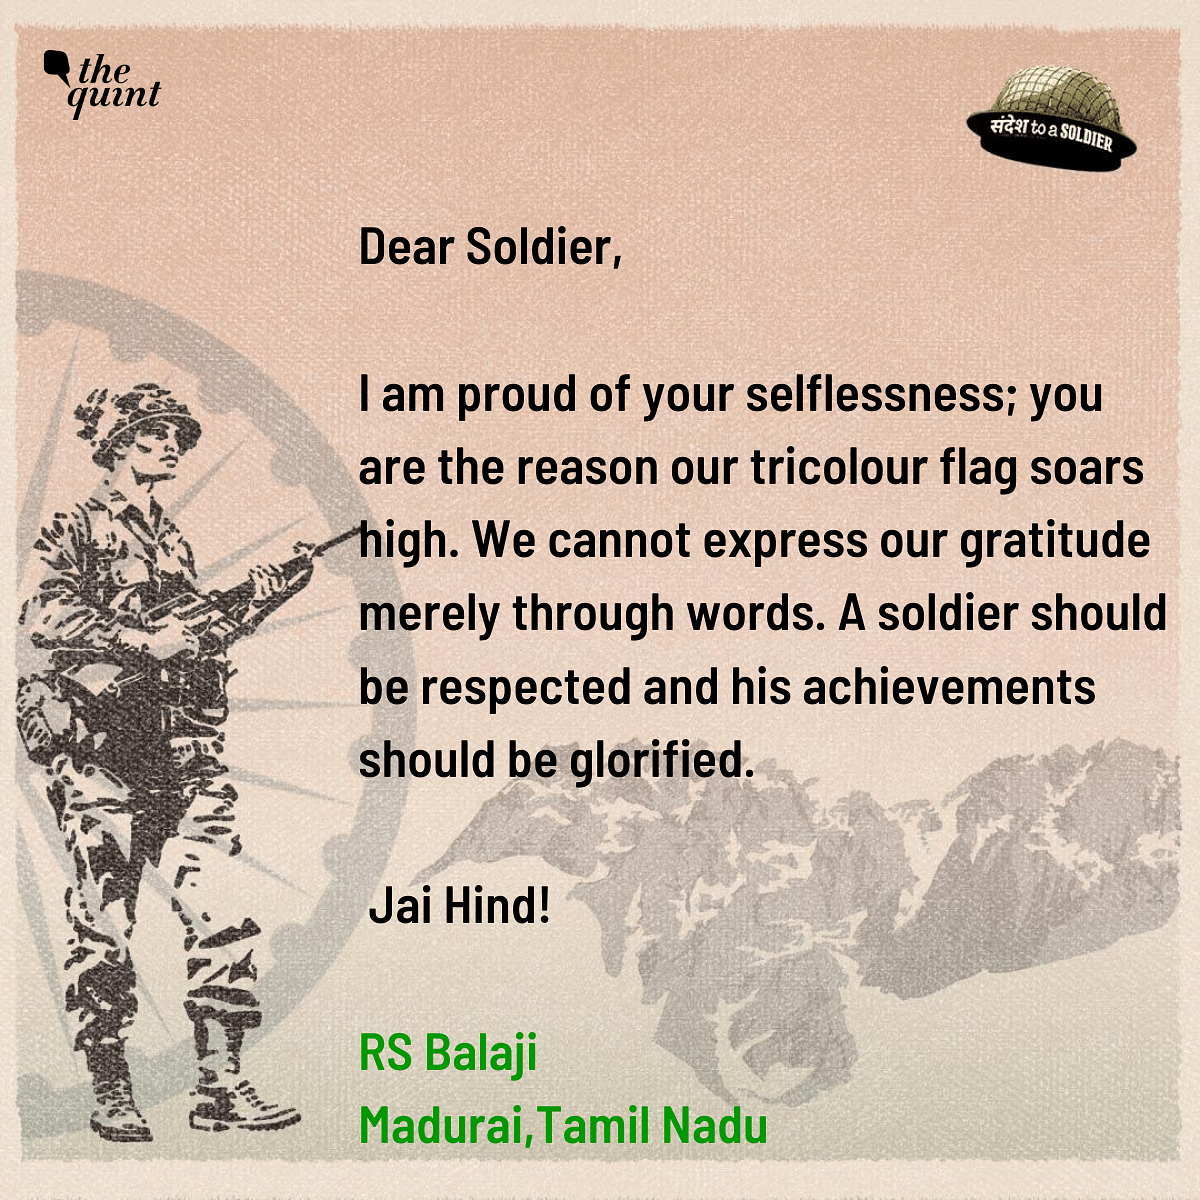 RS Balaji from Tamil Nadu sends his sandesh to a soldier.